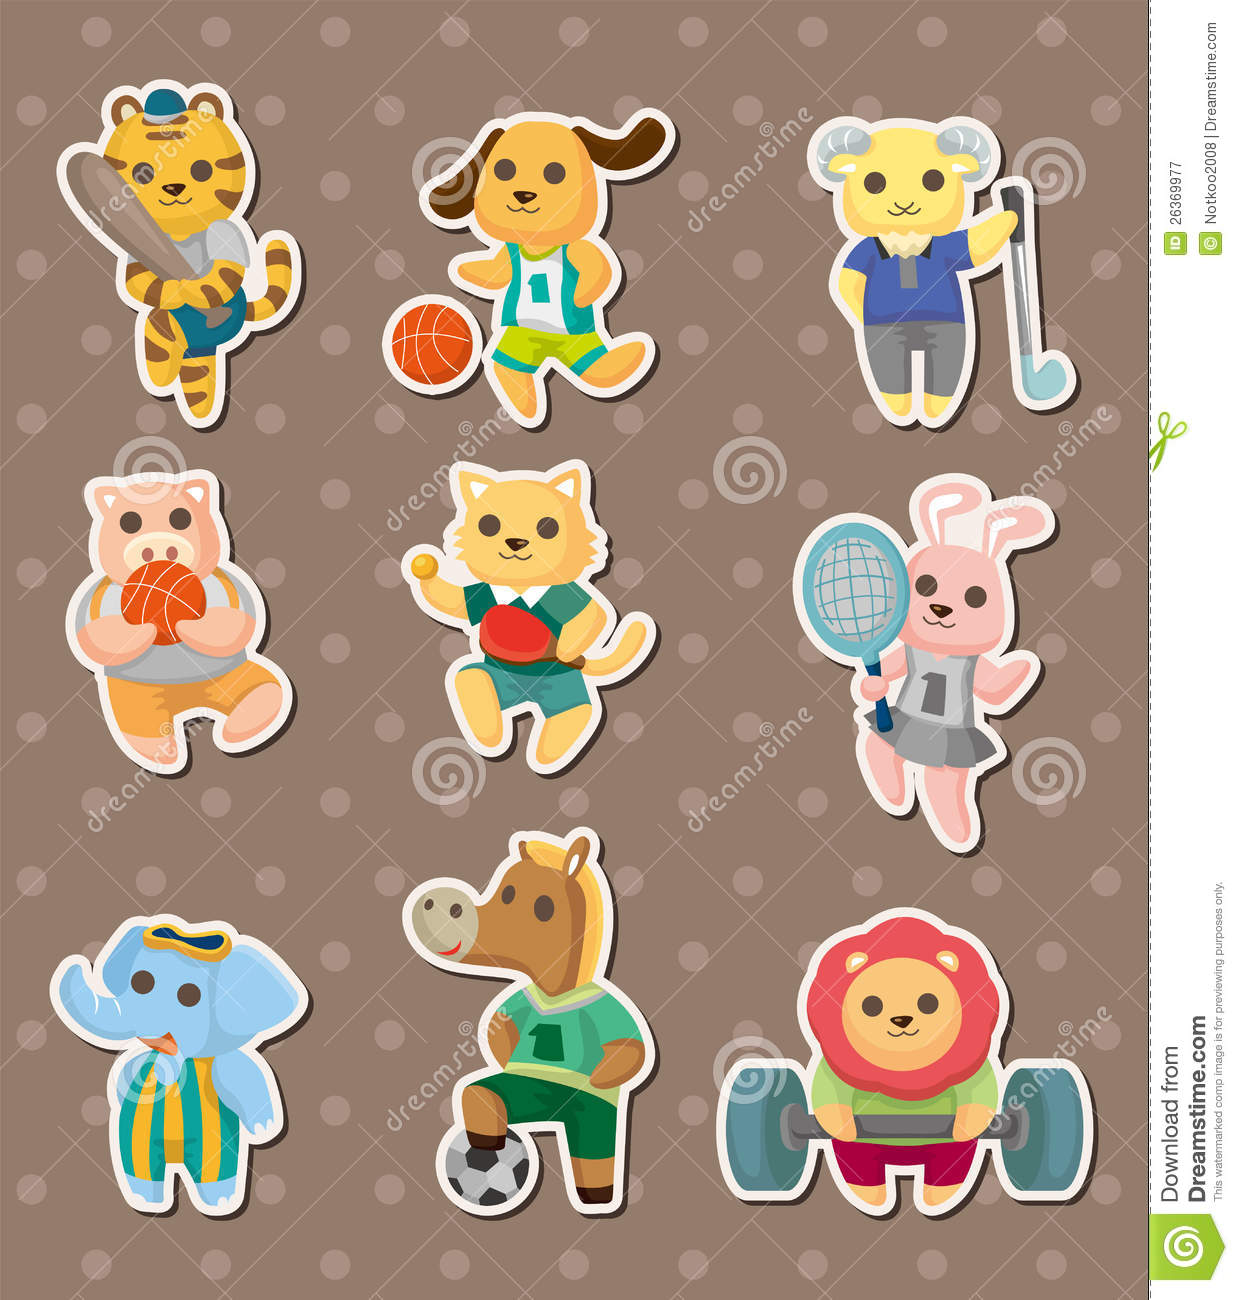 cartoon animal stickers in - photo #25